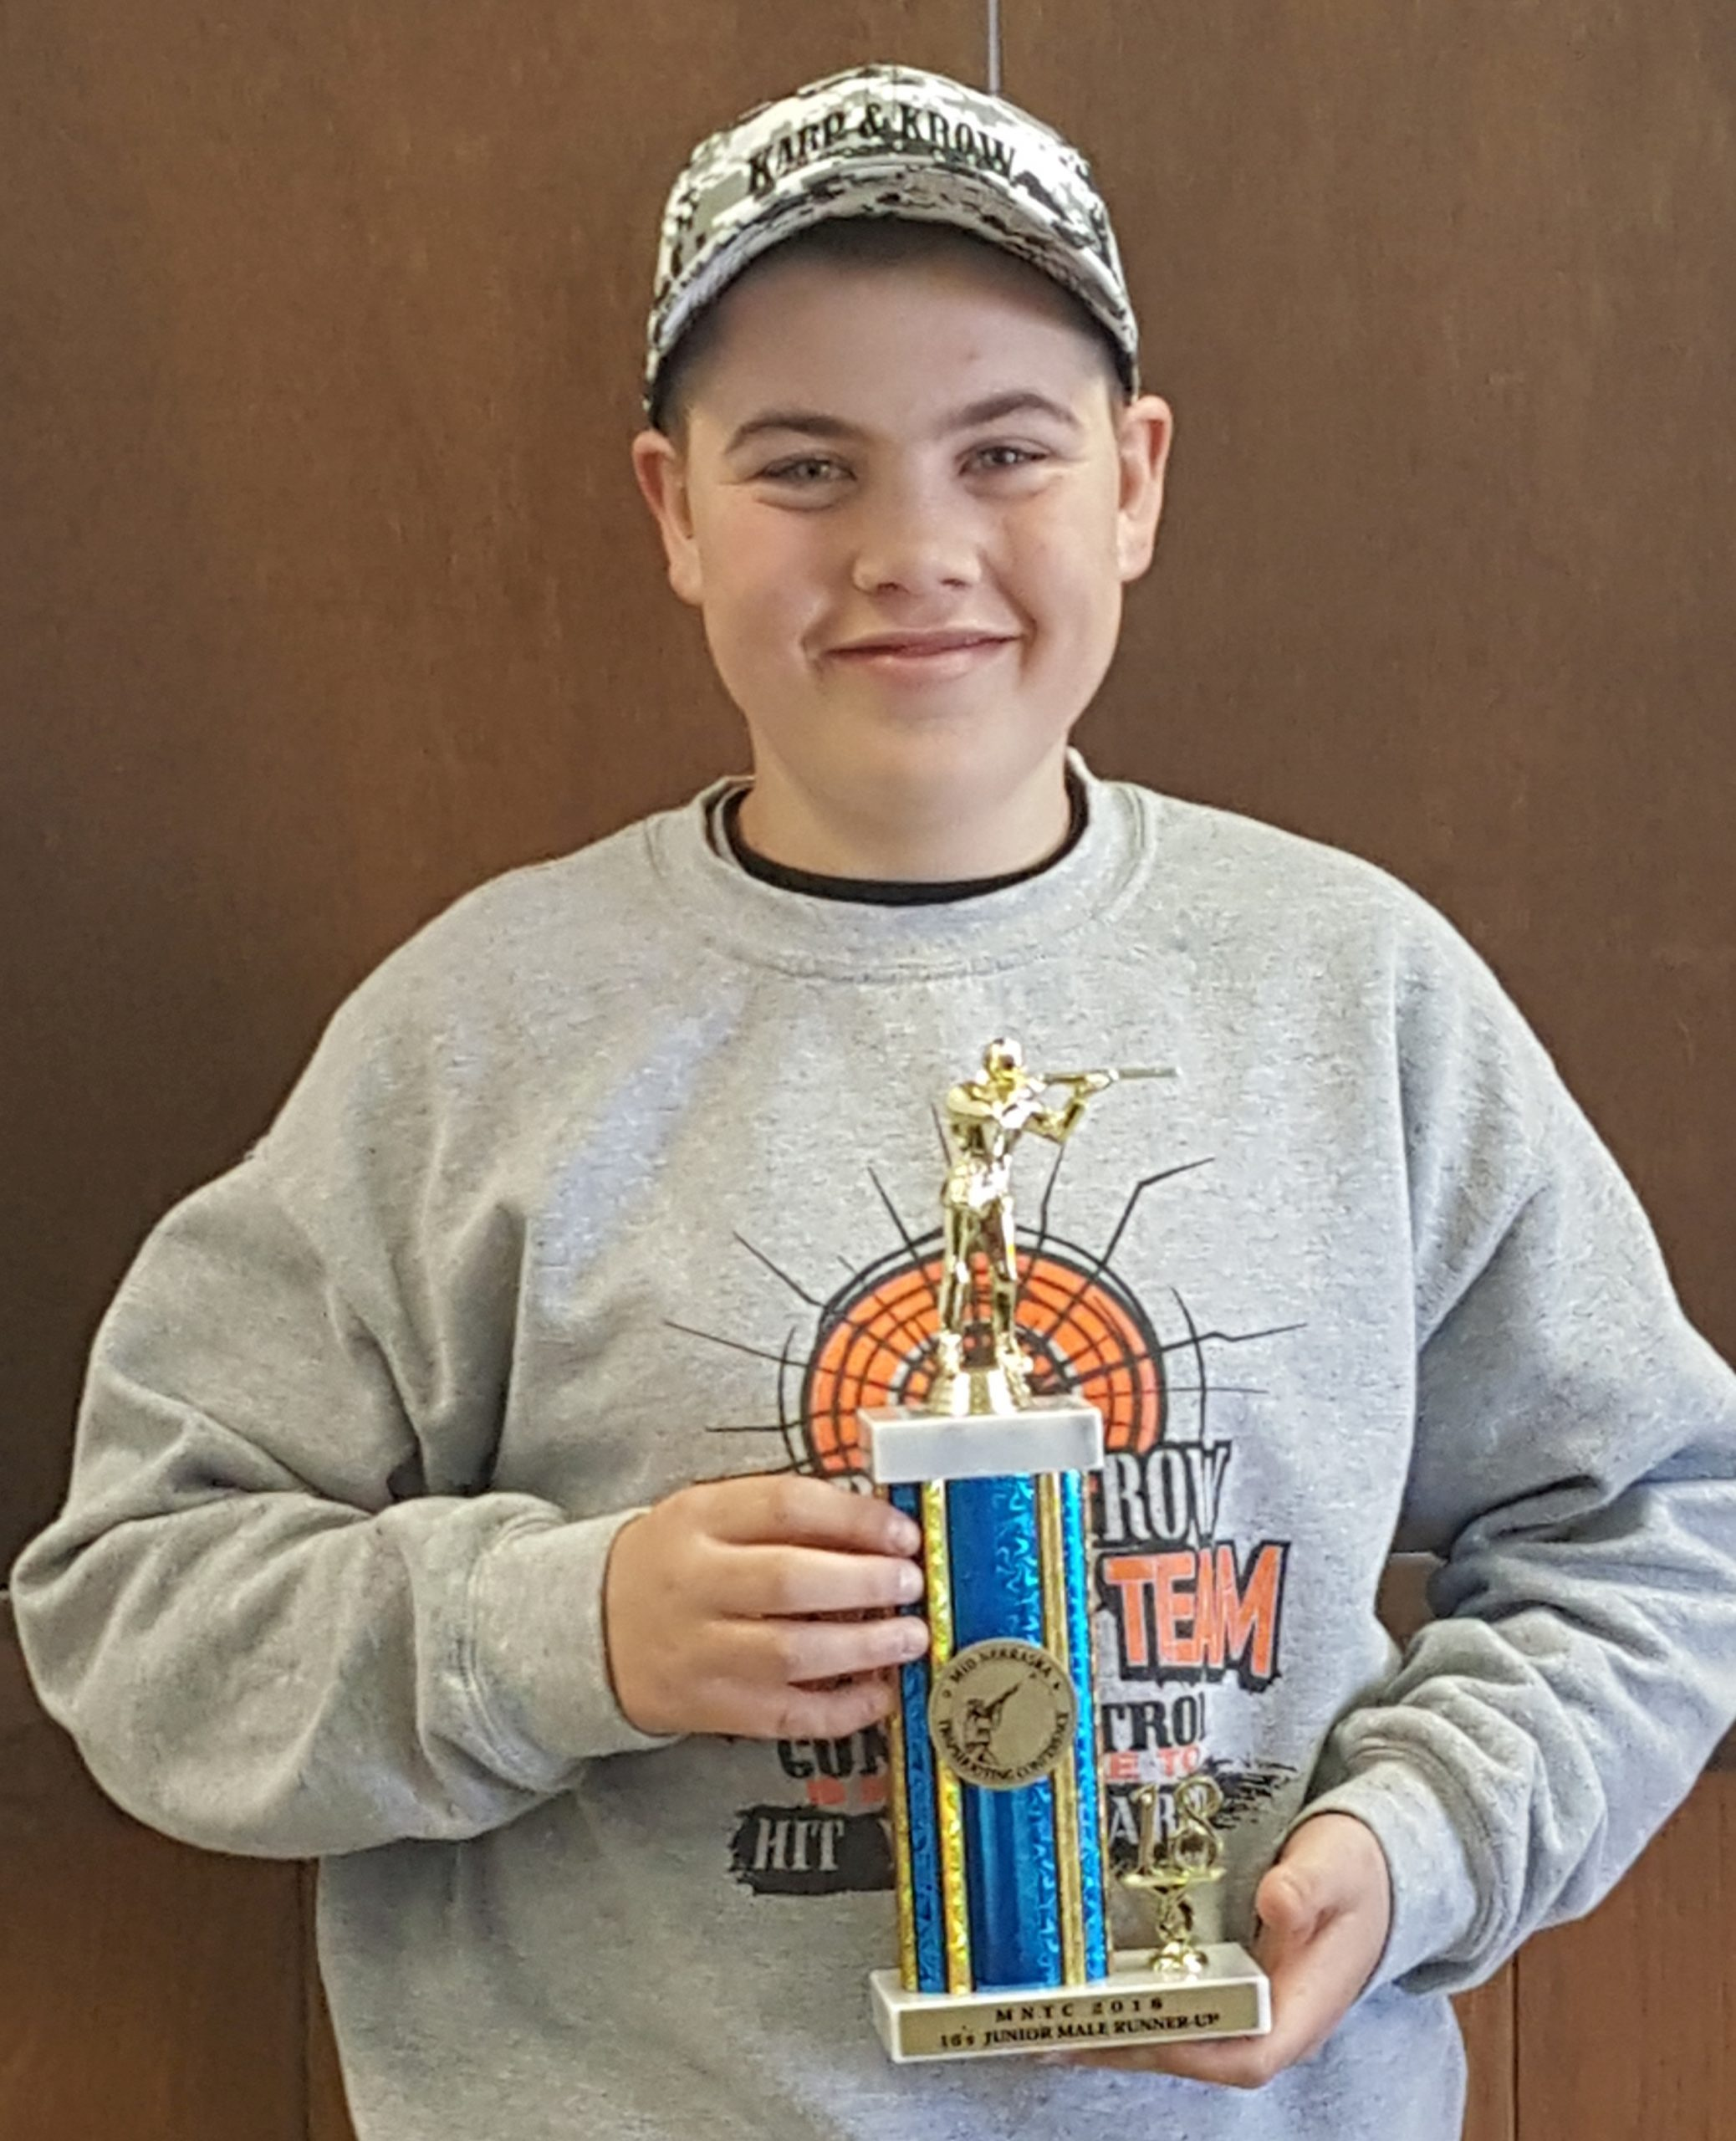 Karp & Krow 4H Shooting Team Place High in Doniphan on Saturday.